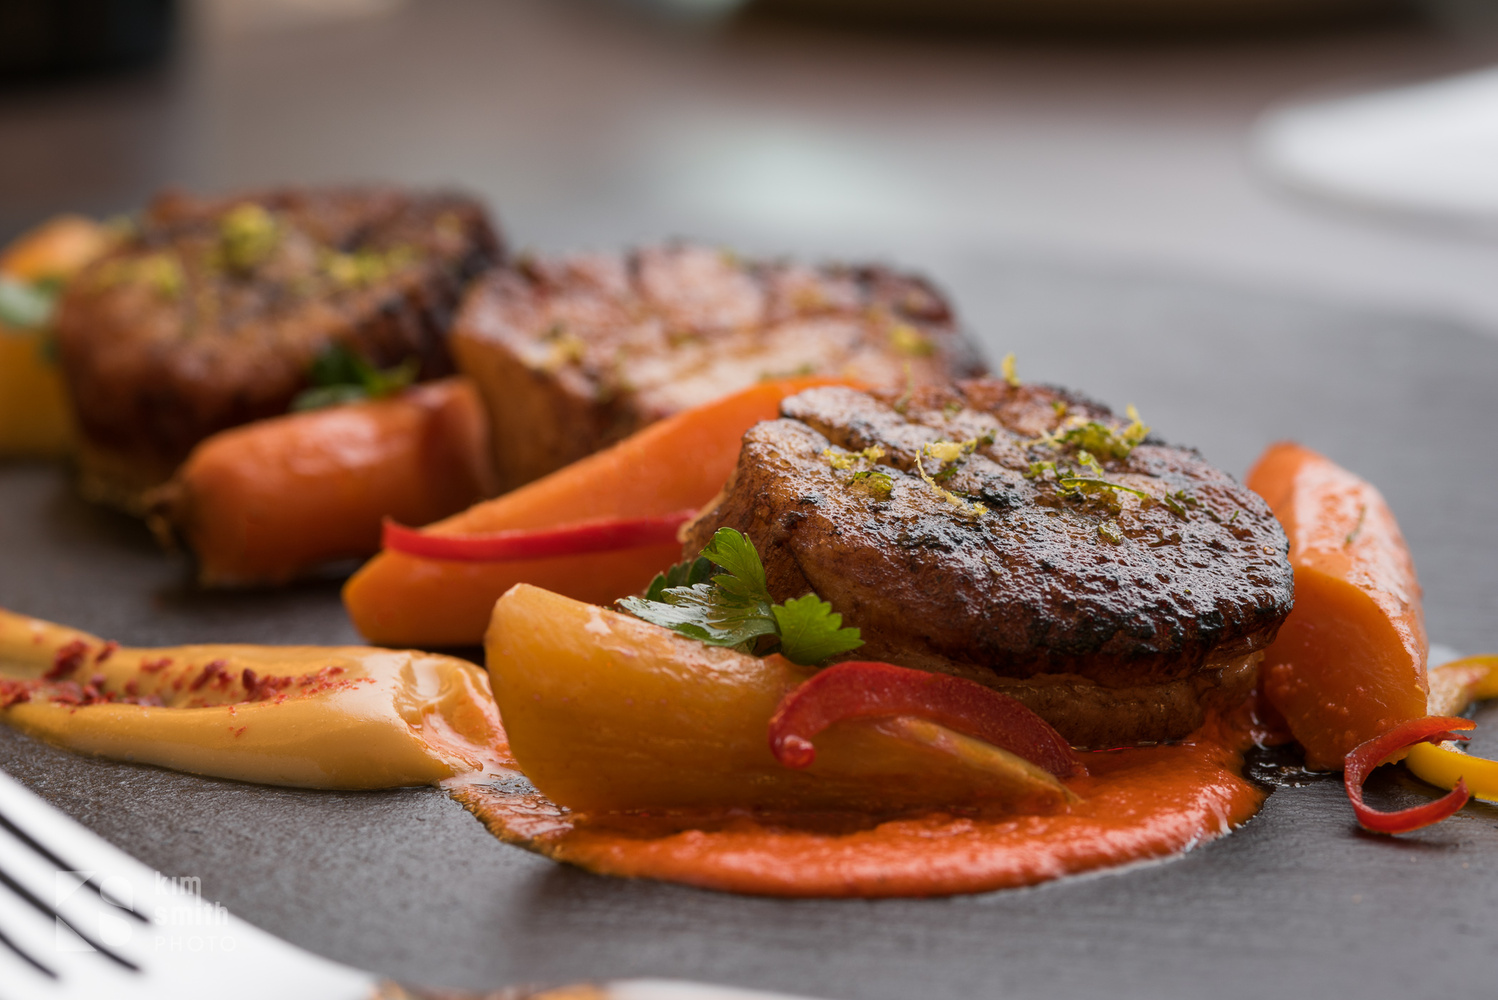 Roasted Duck on Carrot Purée by Kim Smith